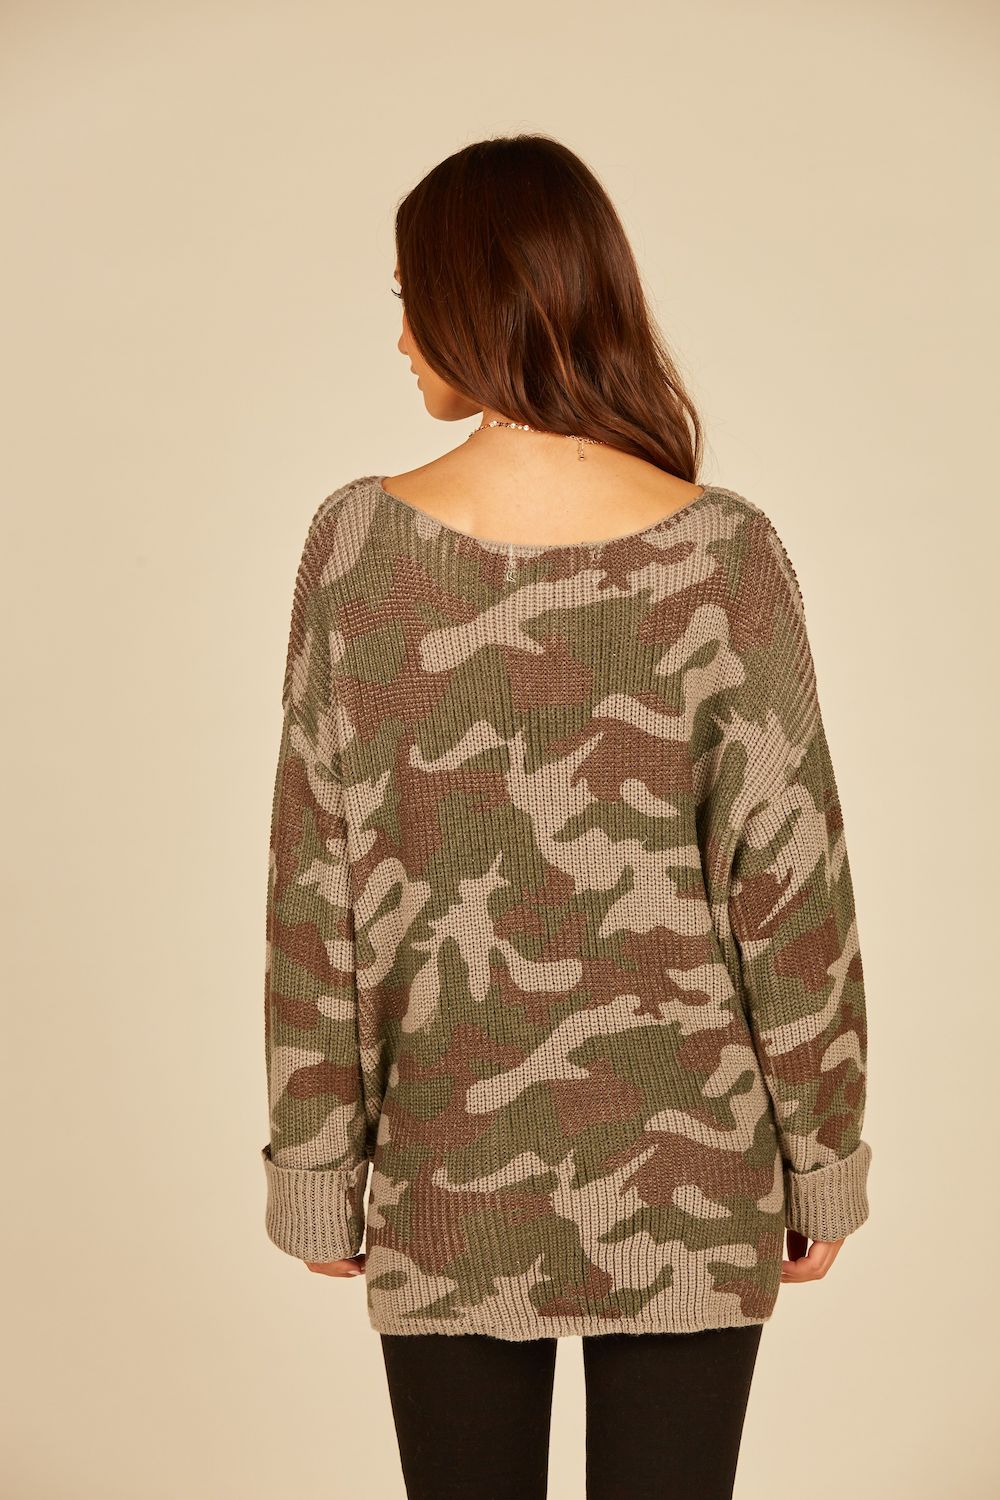 Army Combat Camo Side Tunnel Tie Printed Sweater